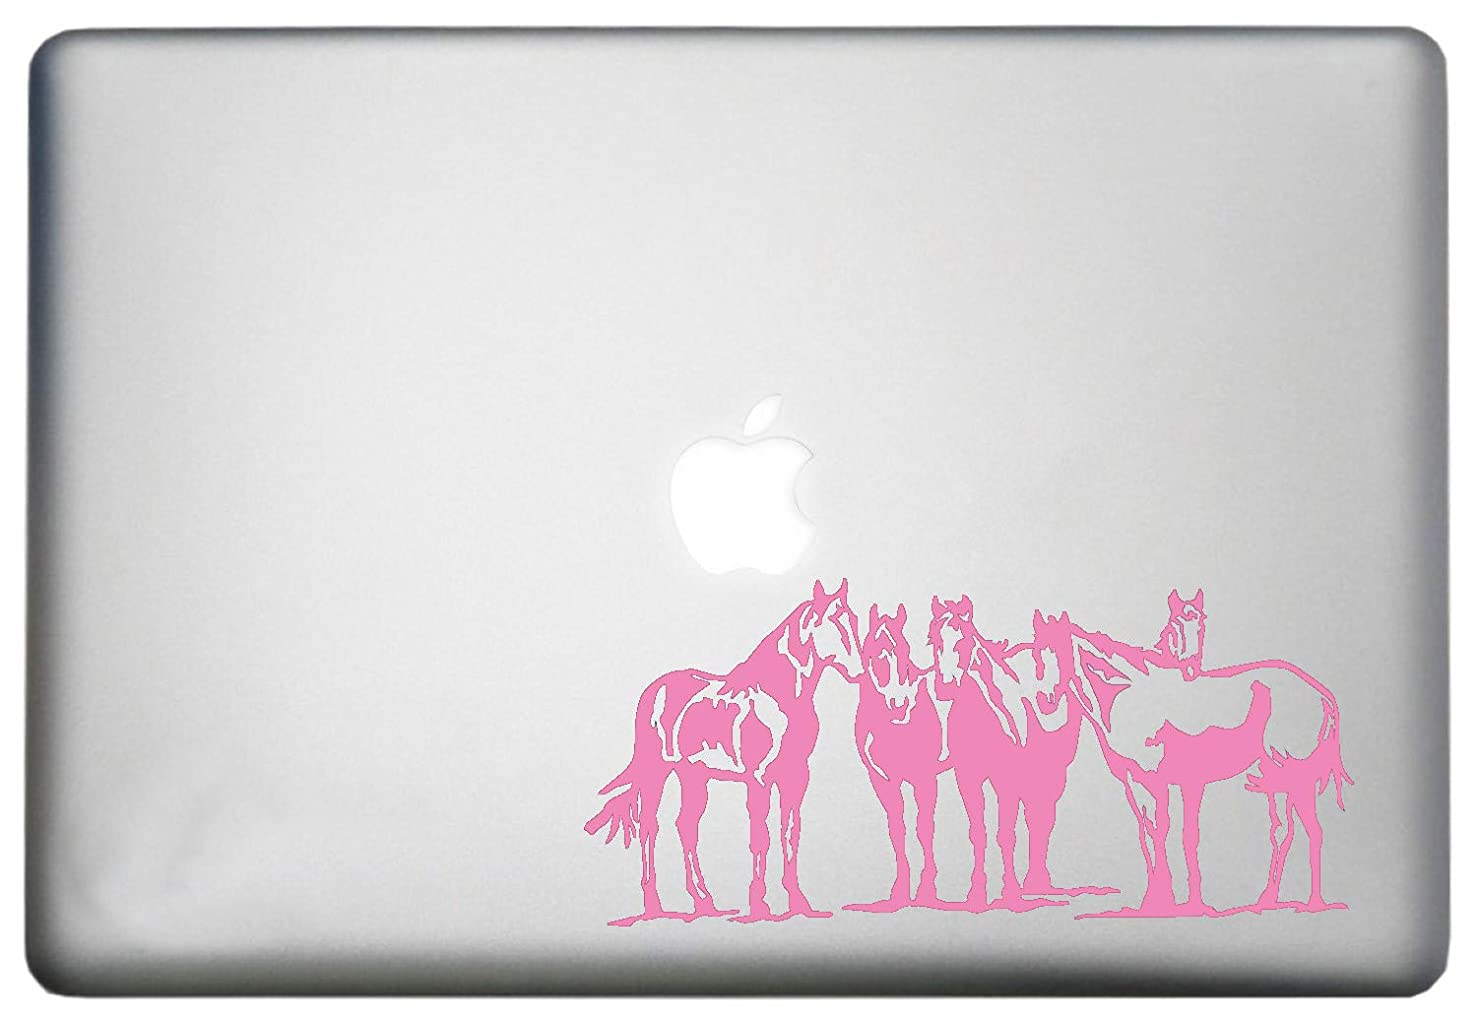 Horse MacBook Pro Silhouette Sticker Decoration Vinyl Decal is a Wild Spirit Horses Design Laptop Sticker. Laptop Sizes 11, 12, 13 and 15 inch. Many Colors-Soft Pink